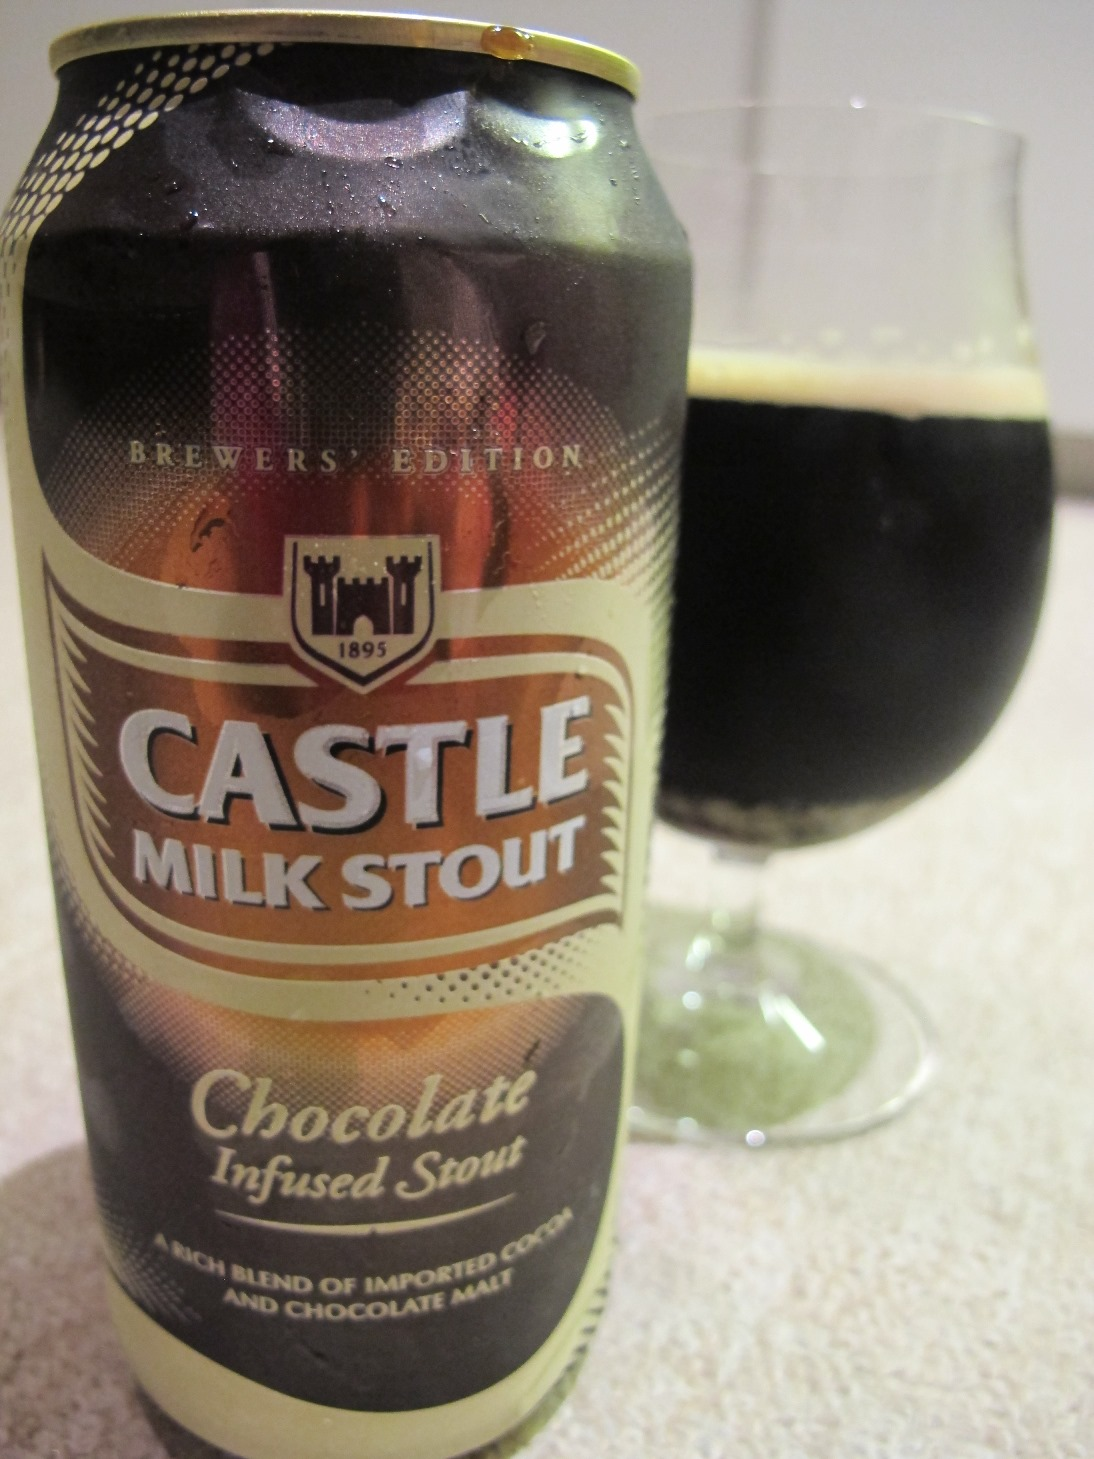 Castle Milk Stout Chocolate